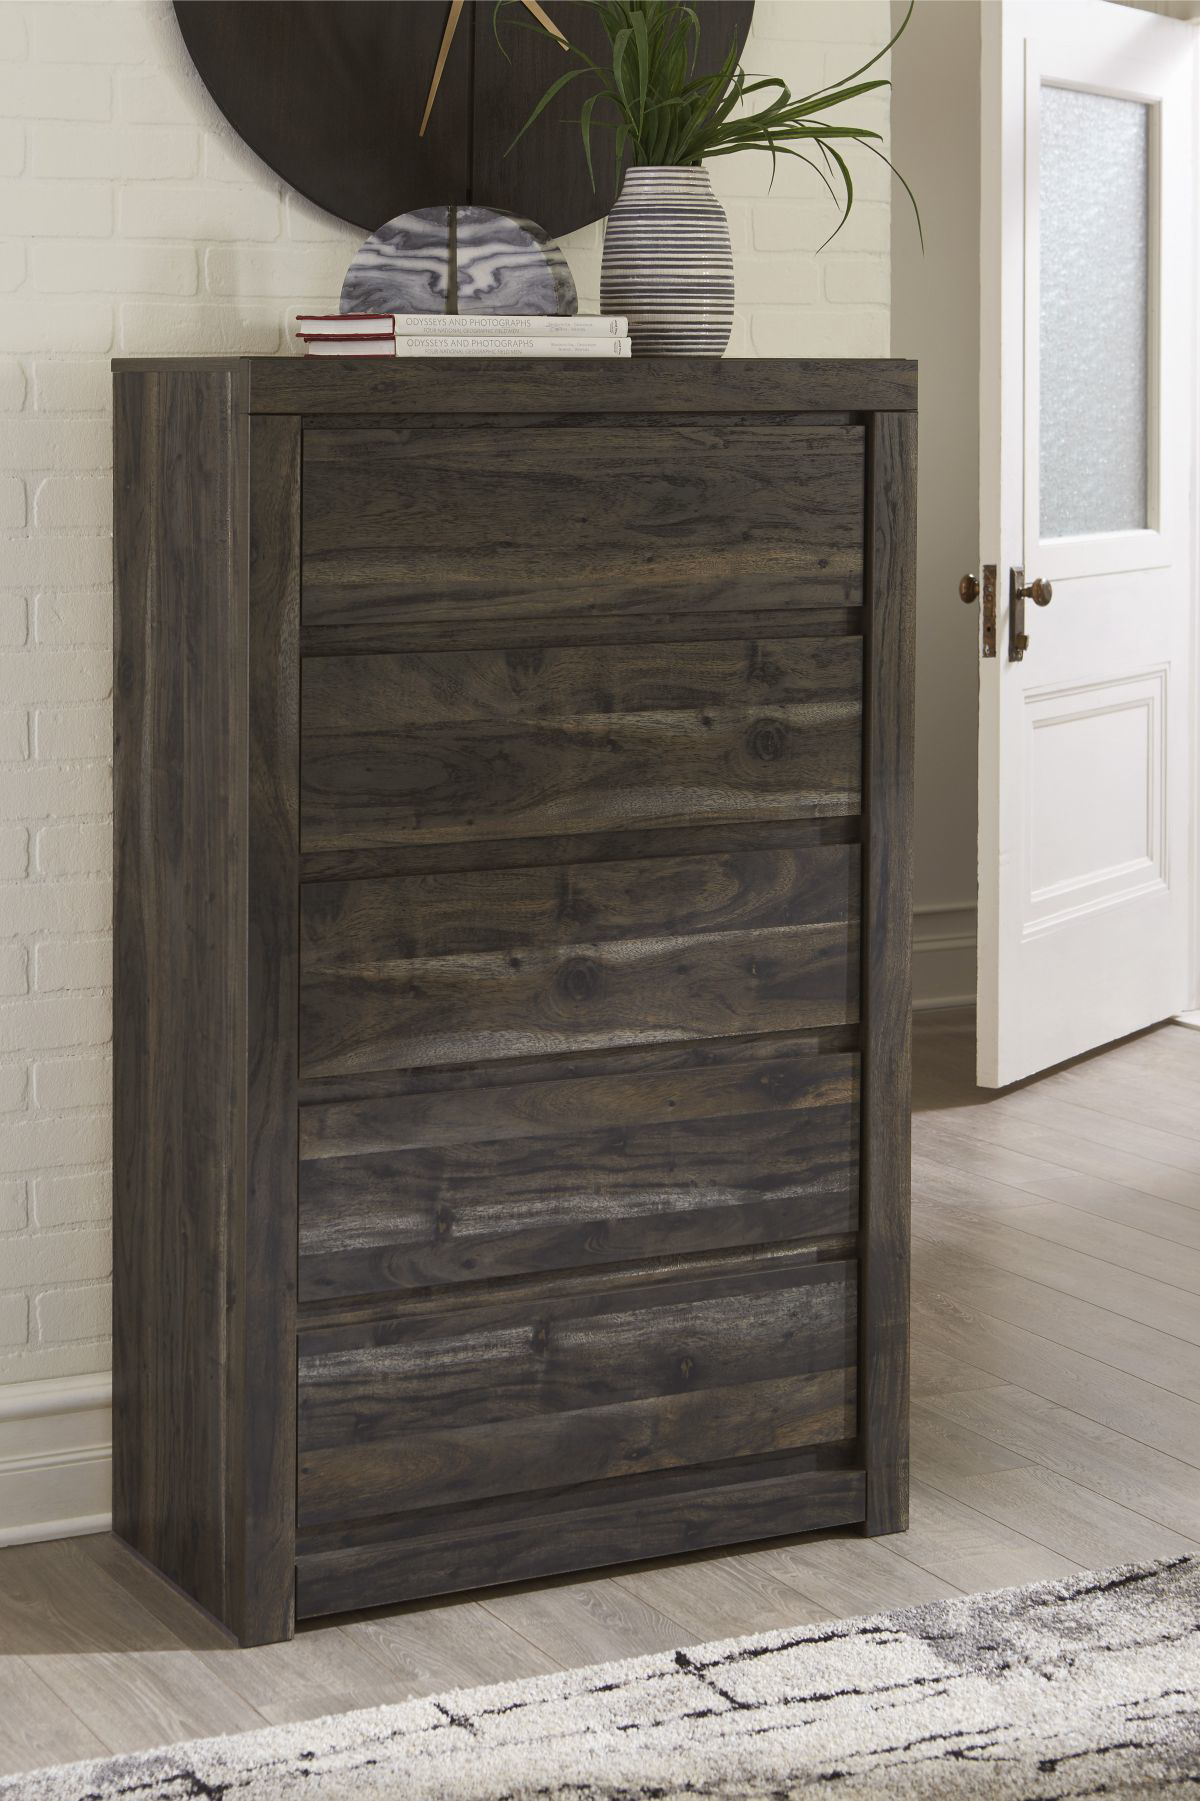 Picture of Vay Bay Chest of Drawers